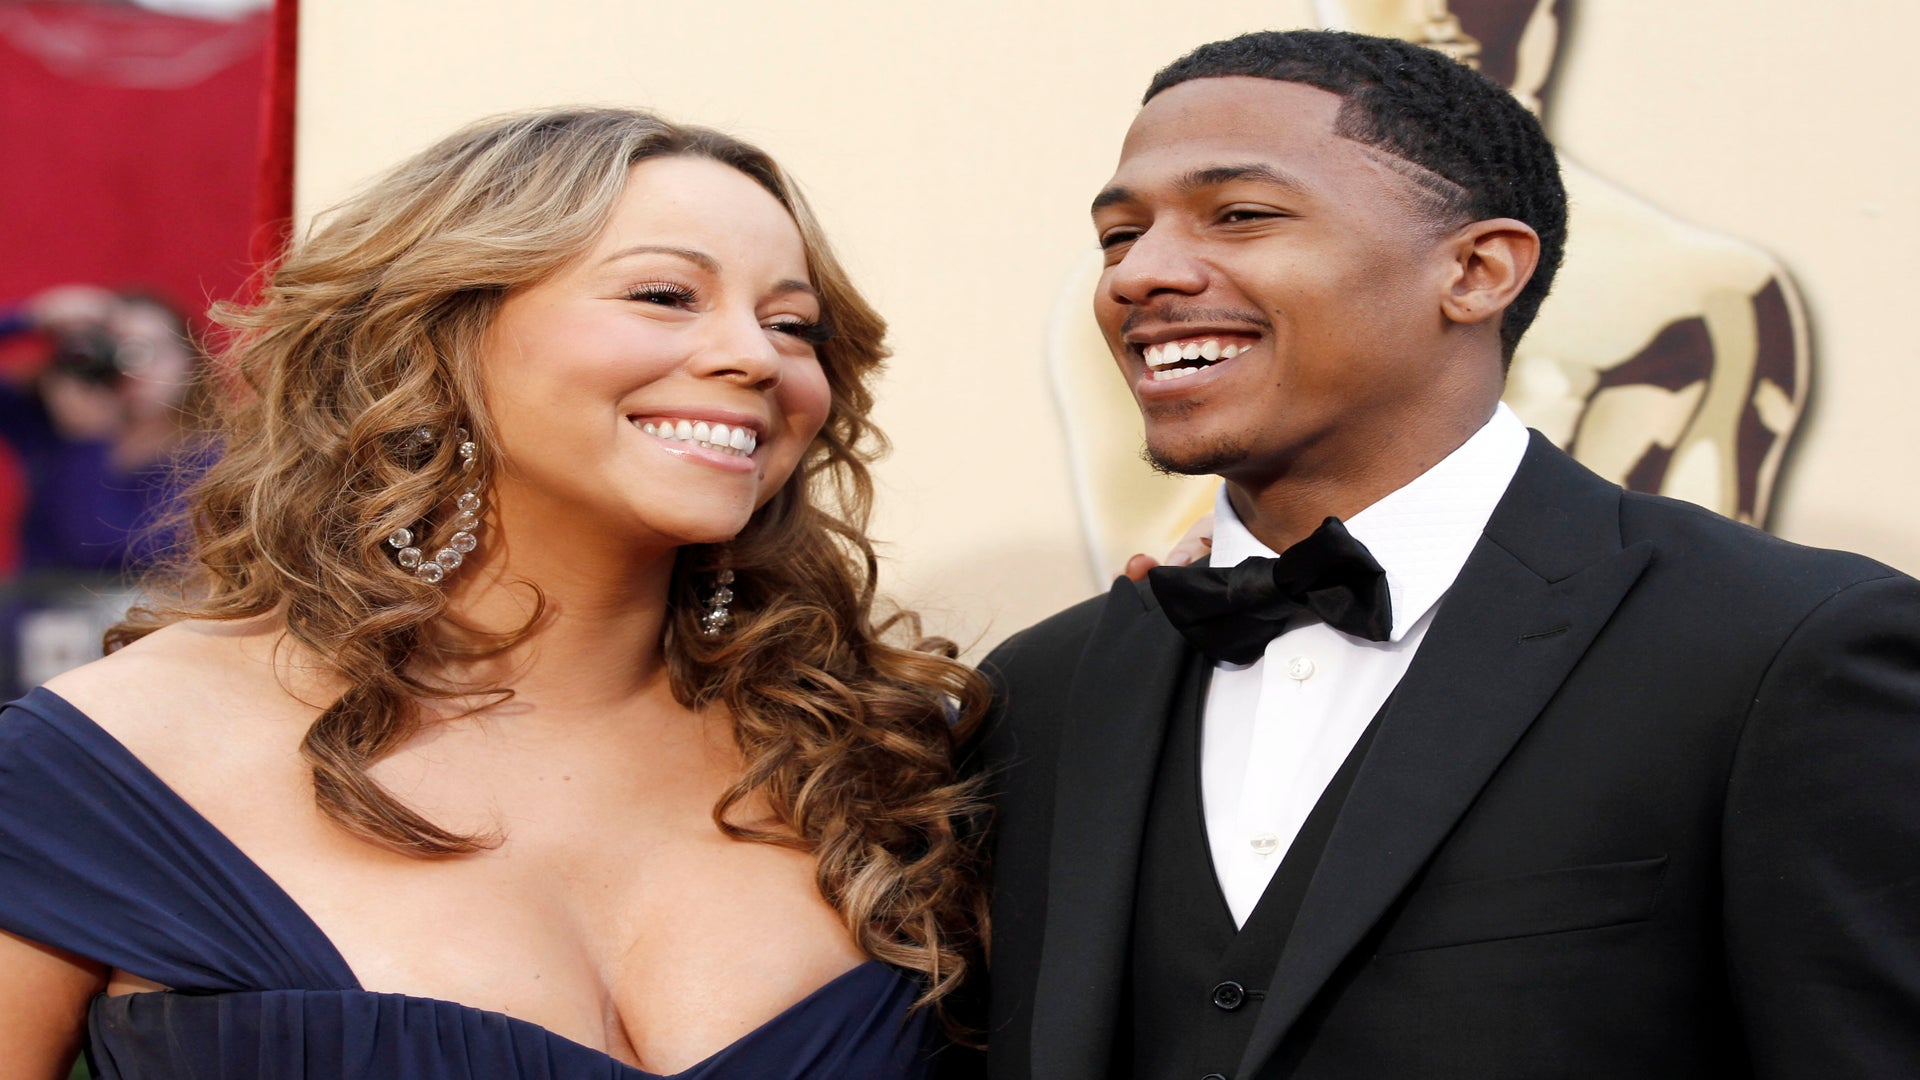 Mariah Carey and Nick Cannon Plan 4th Vow Renewal